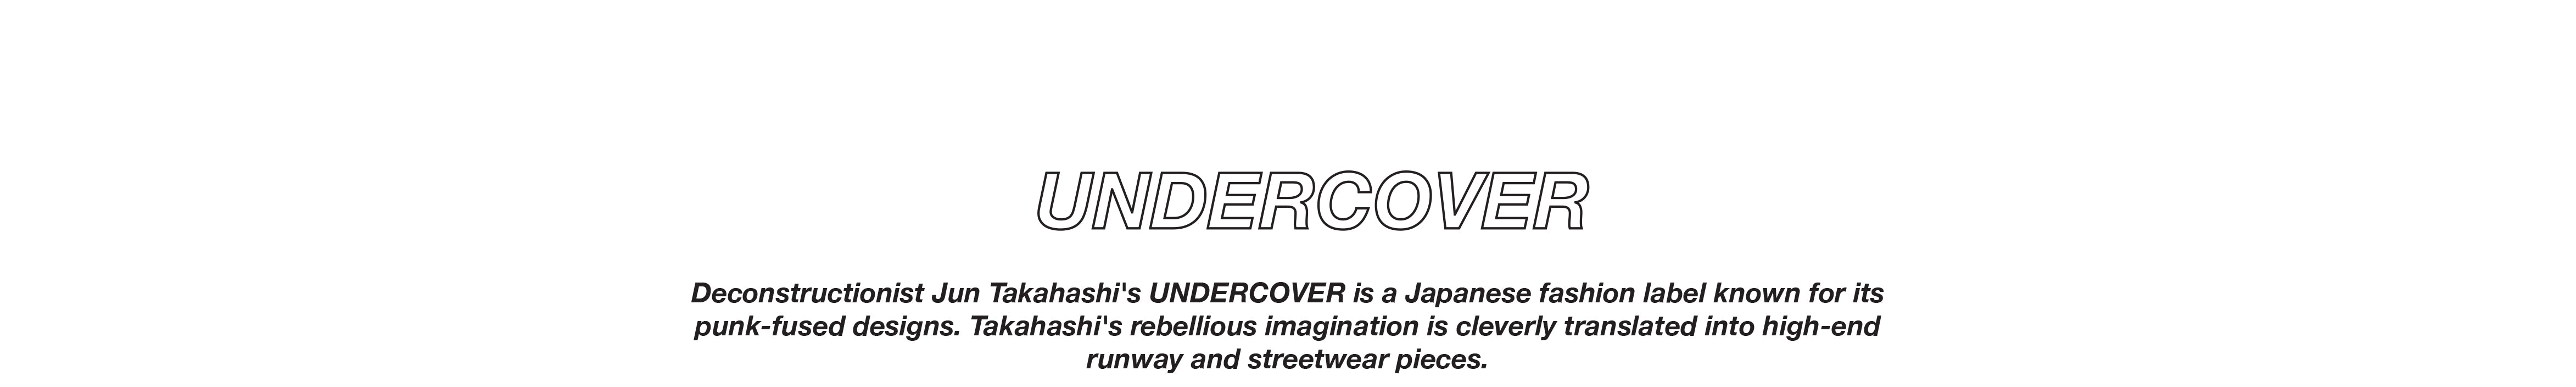 collections/undercover-1.jpg